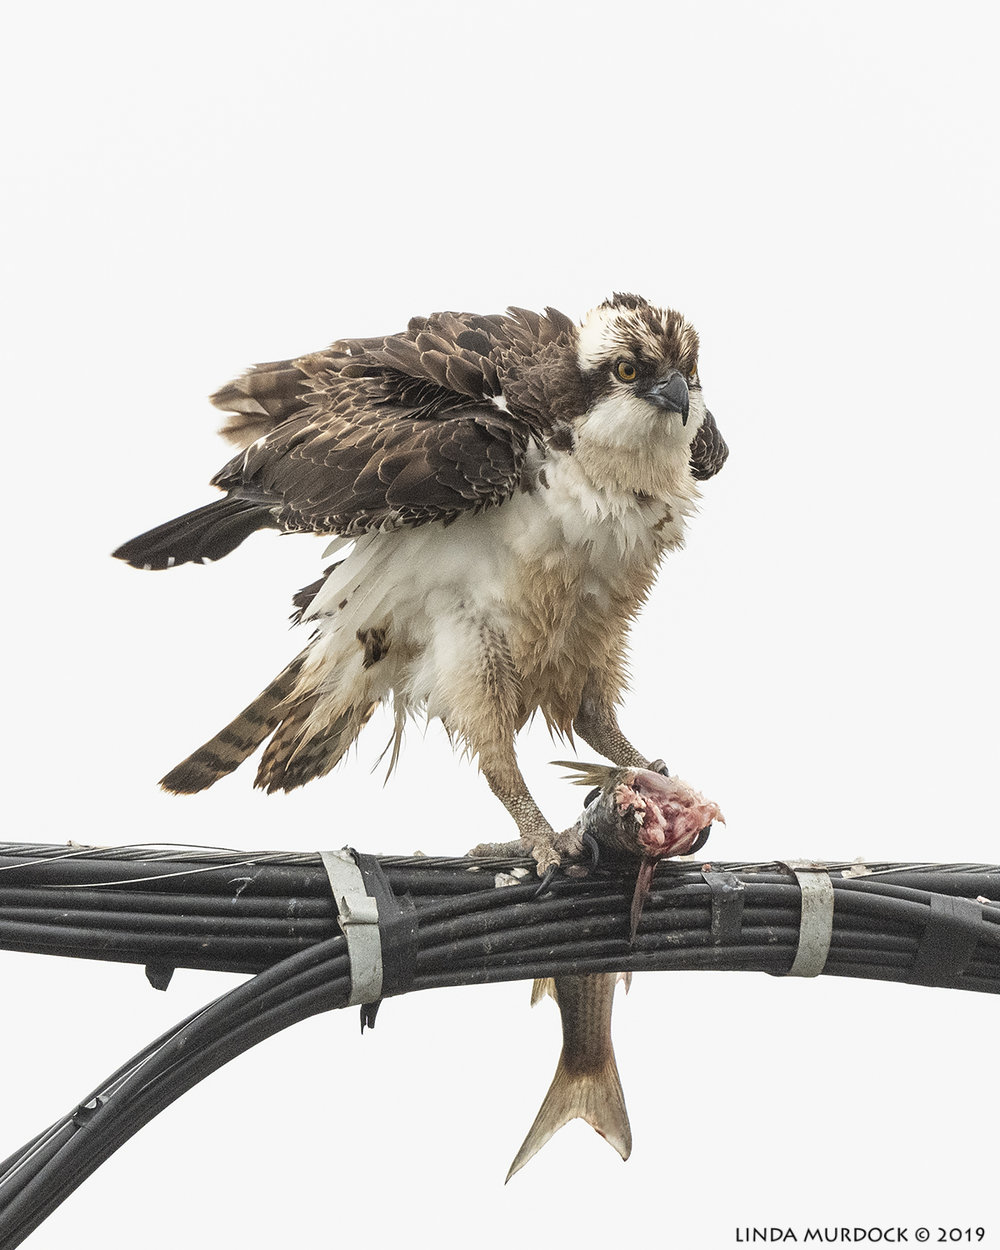 Interrupted Osprey  Nikon D850 with Nikkor 500 f/5.6 PF VR ~ 1/2000 sec f/6.3 ISO 1000; hand-held